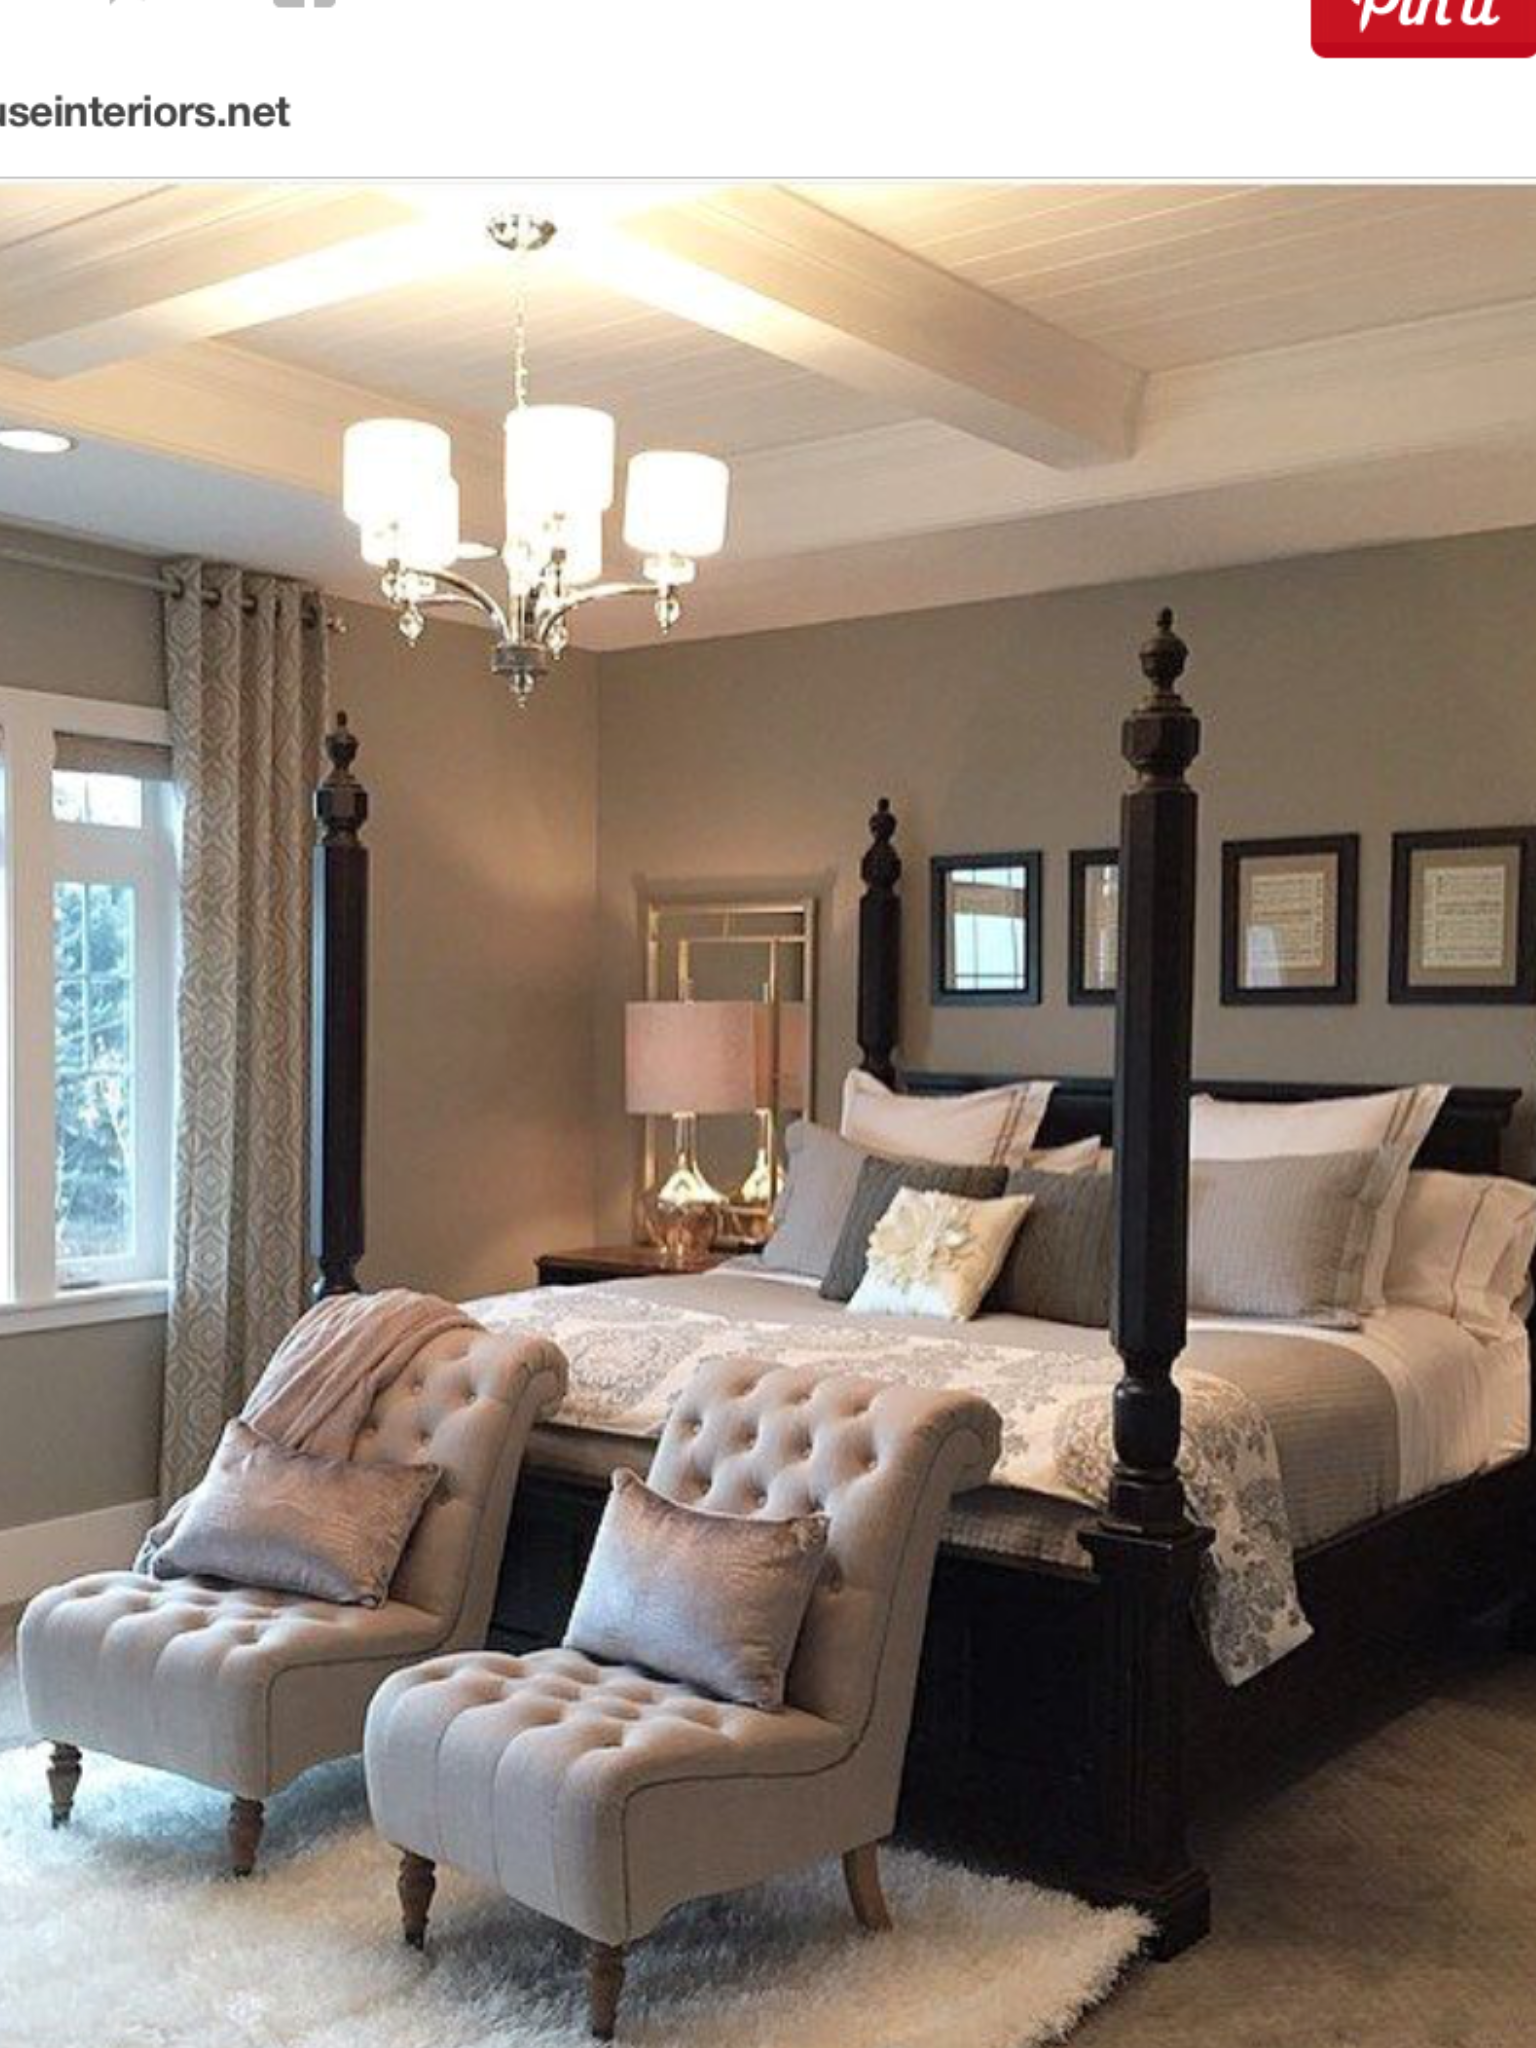 Pin by green eyes on within 4 walls pinterest wall for Master bedroom paint color ideas with dark furniture